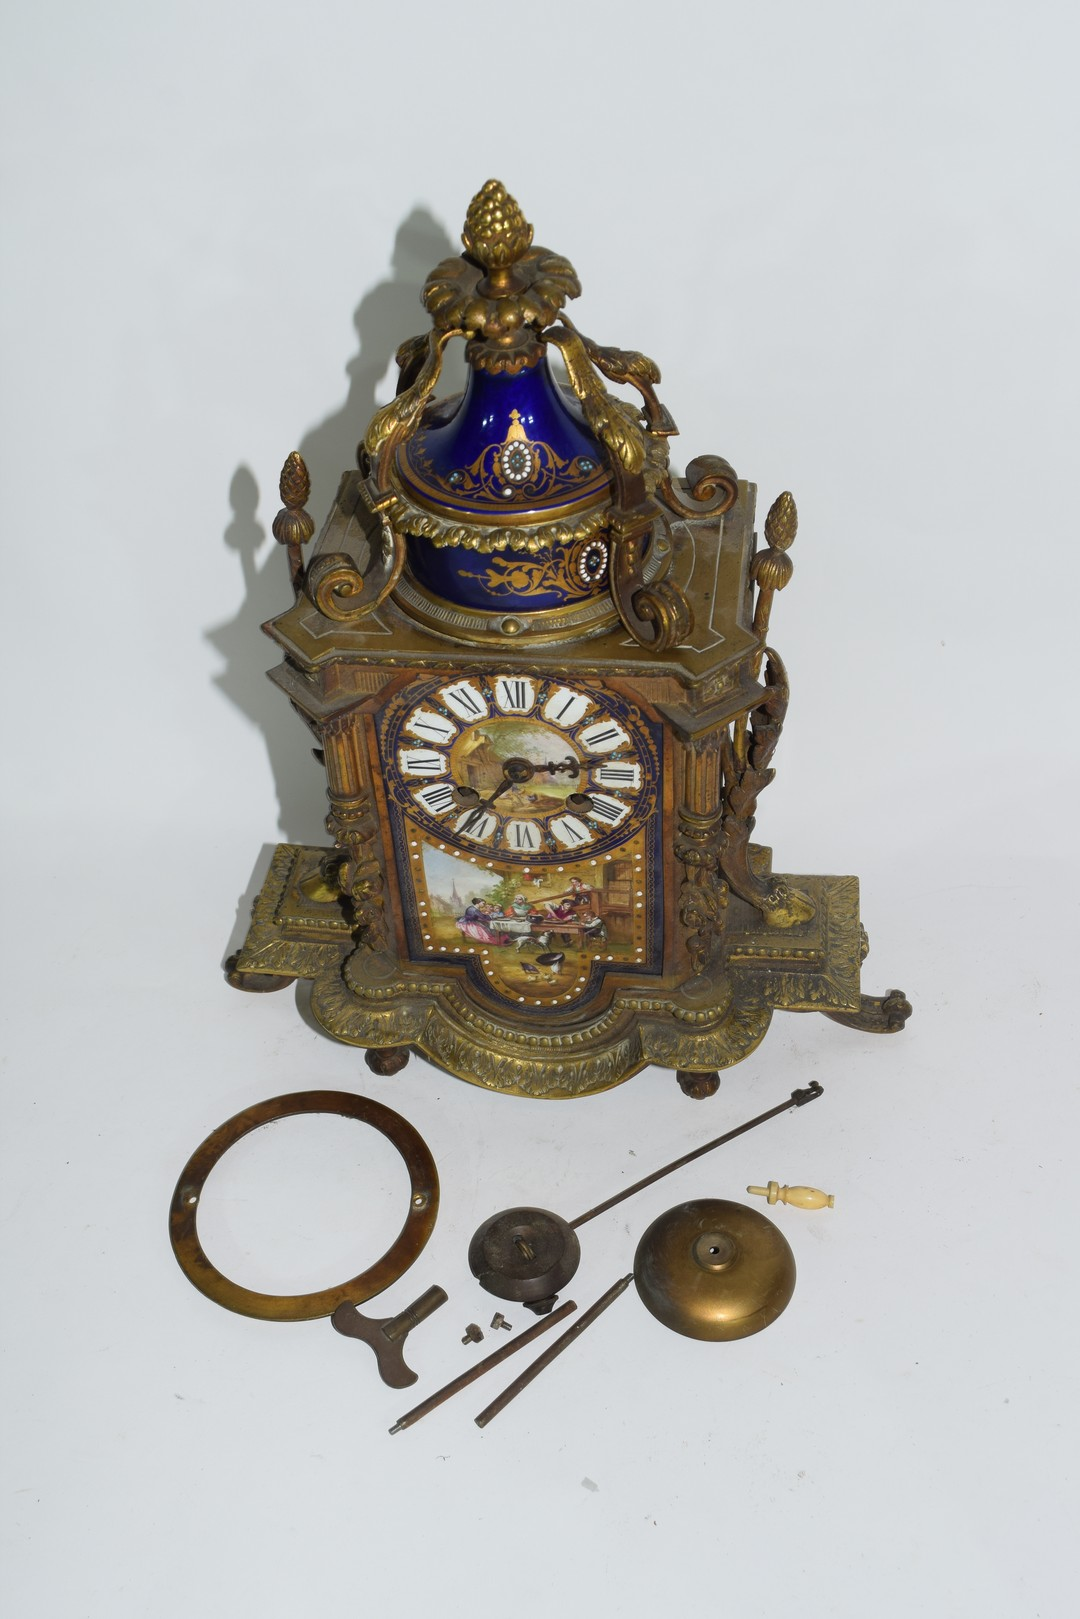 19th century French gilt metal clock with Sevres type porcelain panels - Image 2 of 5